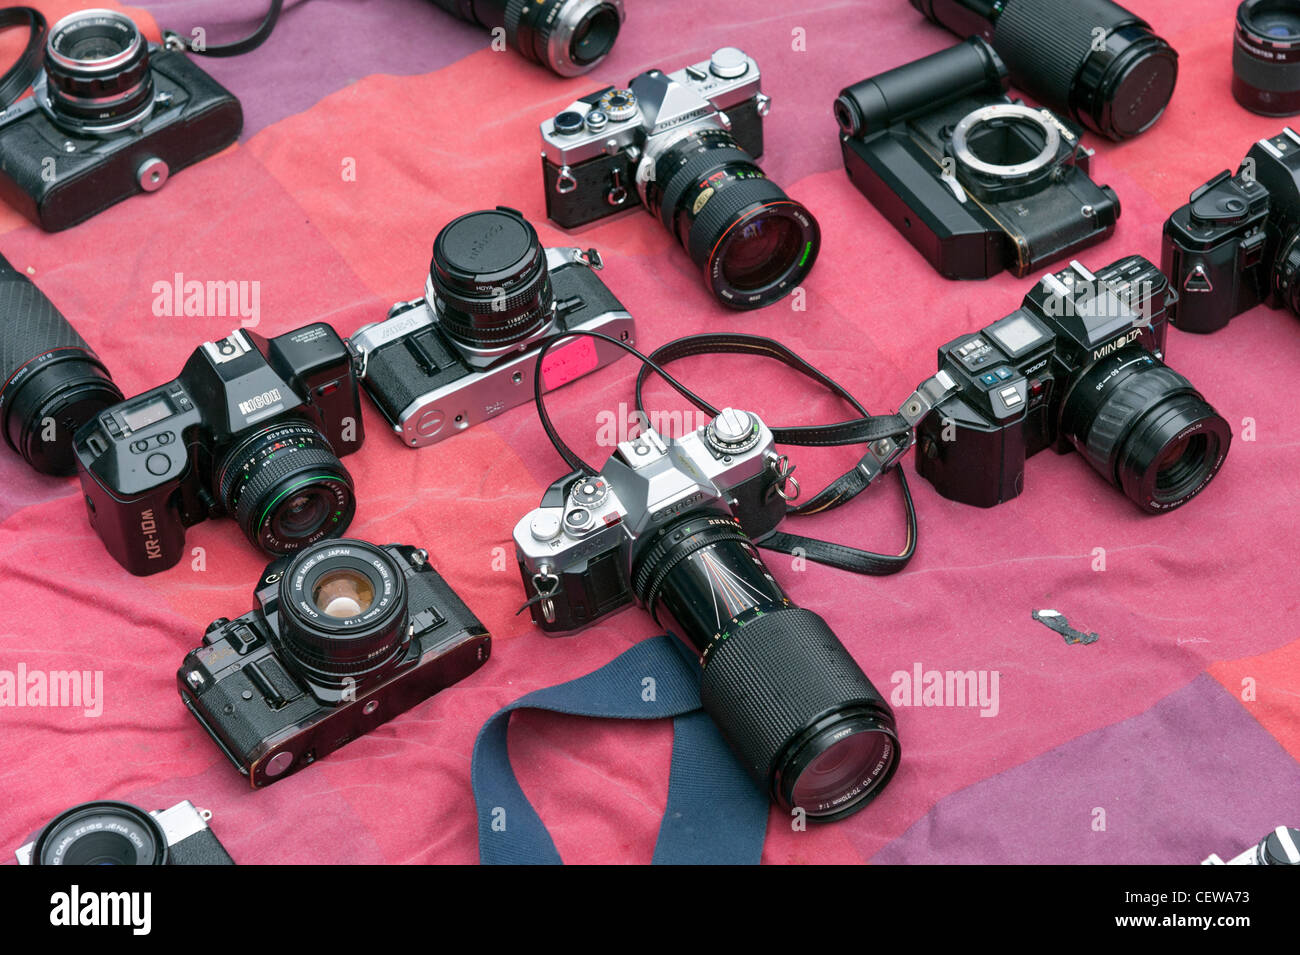 Old secondhand 35mm film cameras for sale on market stall in Brick Lane, London, England, UK - Stock Image